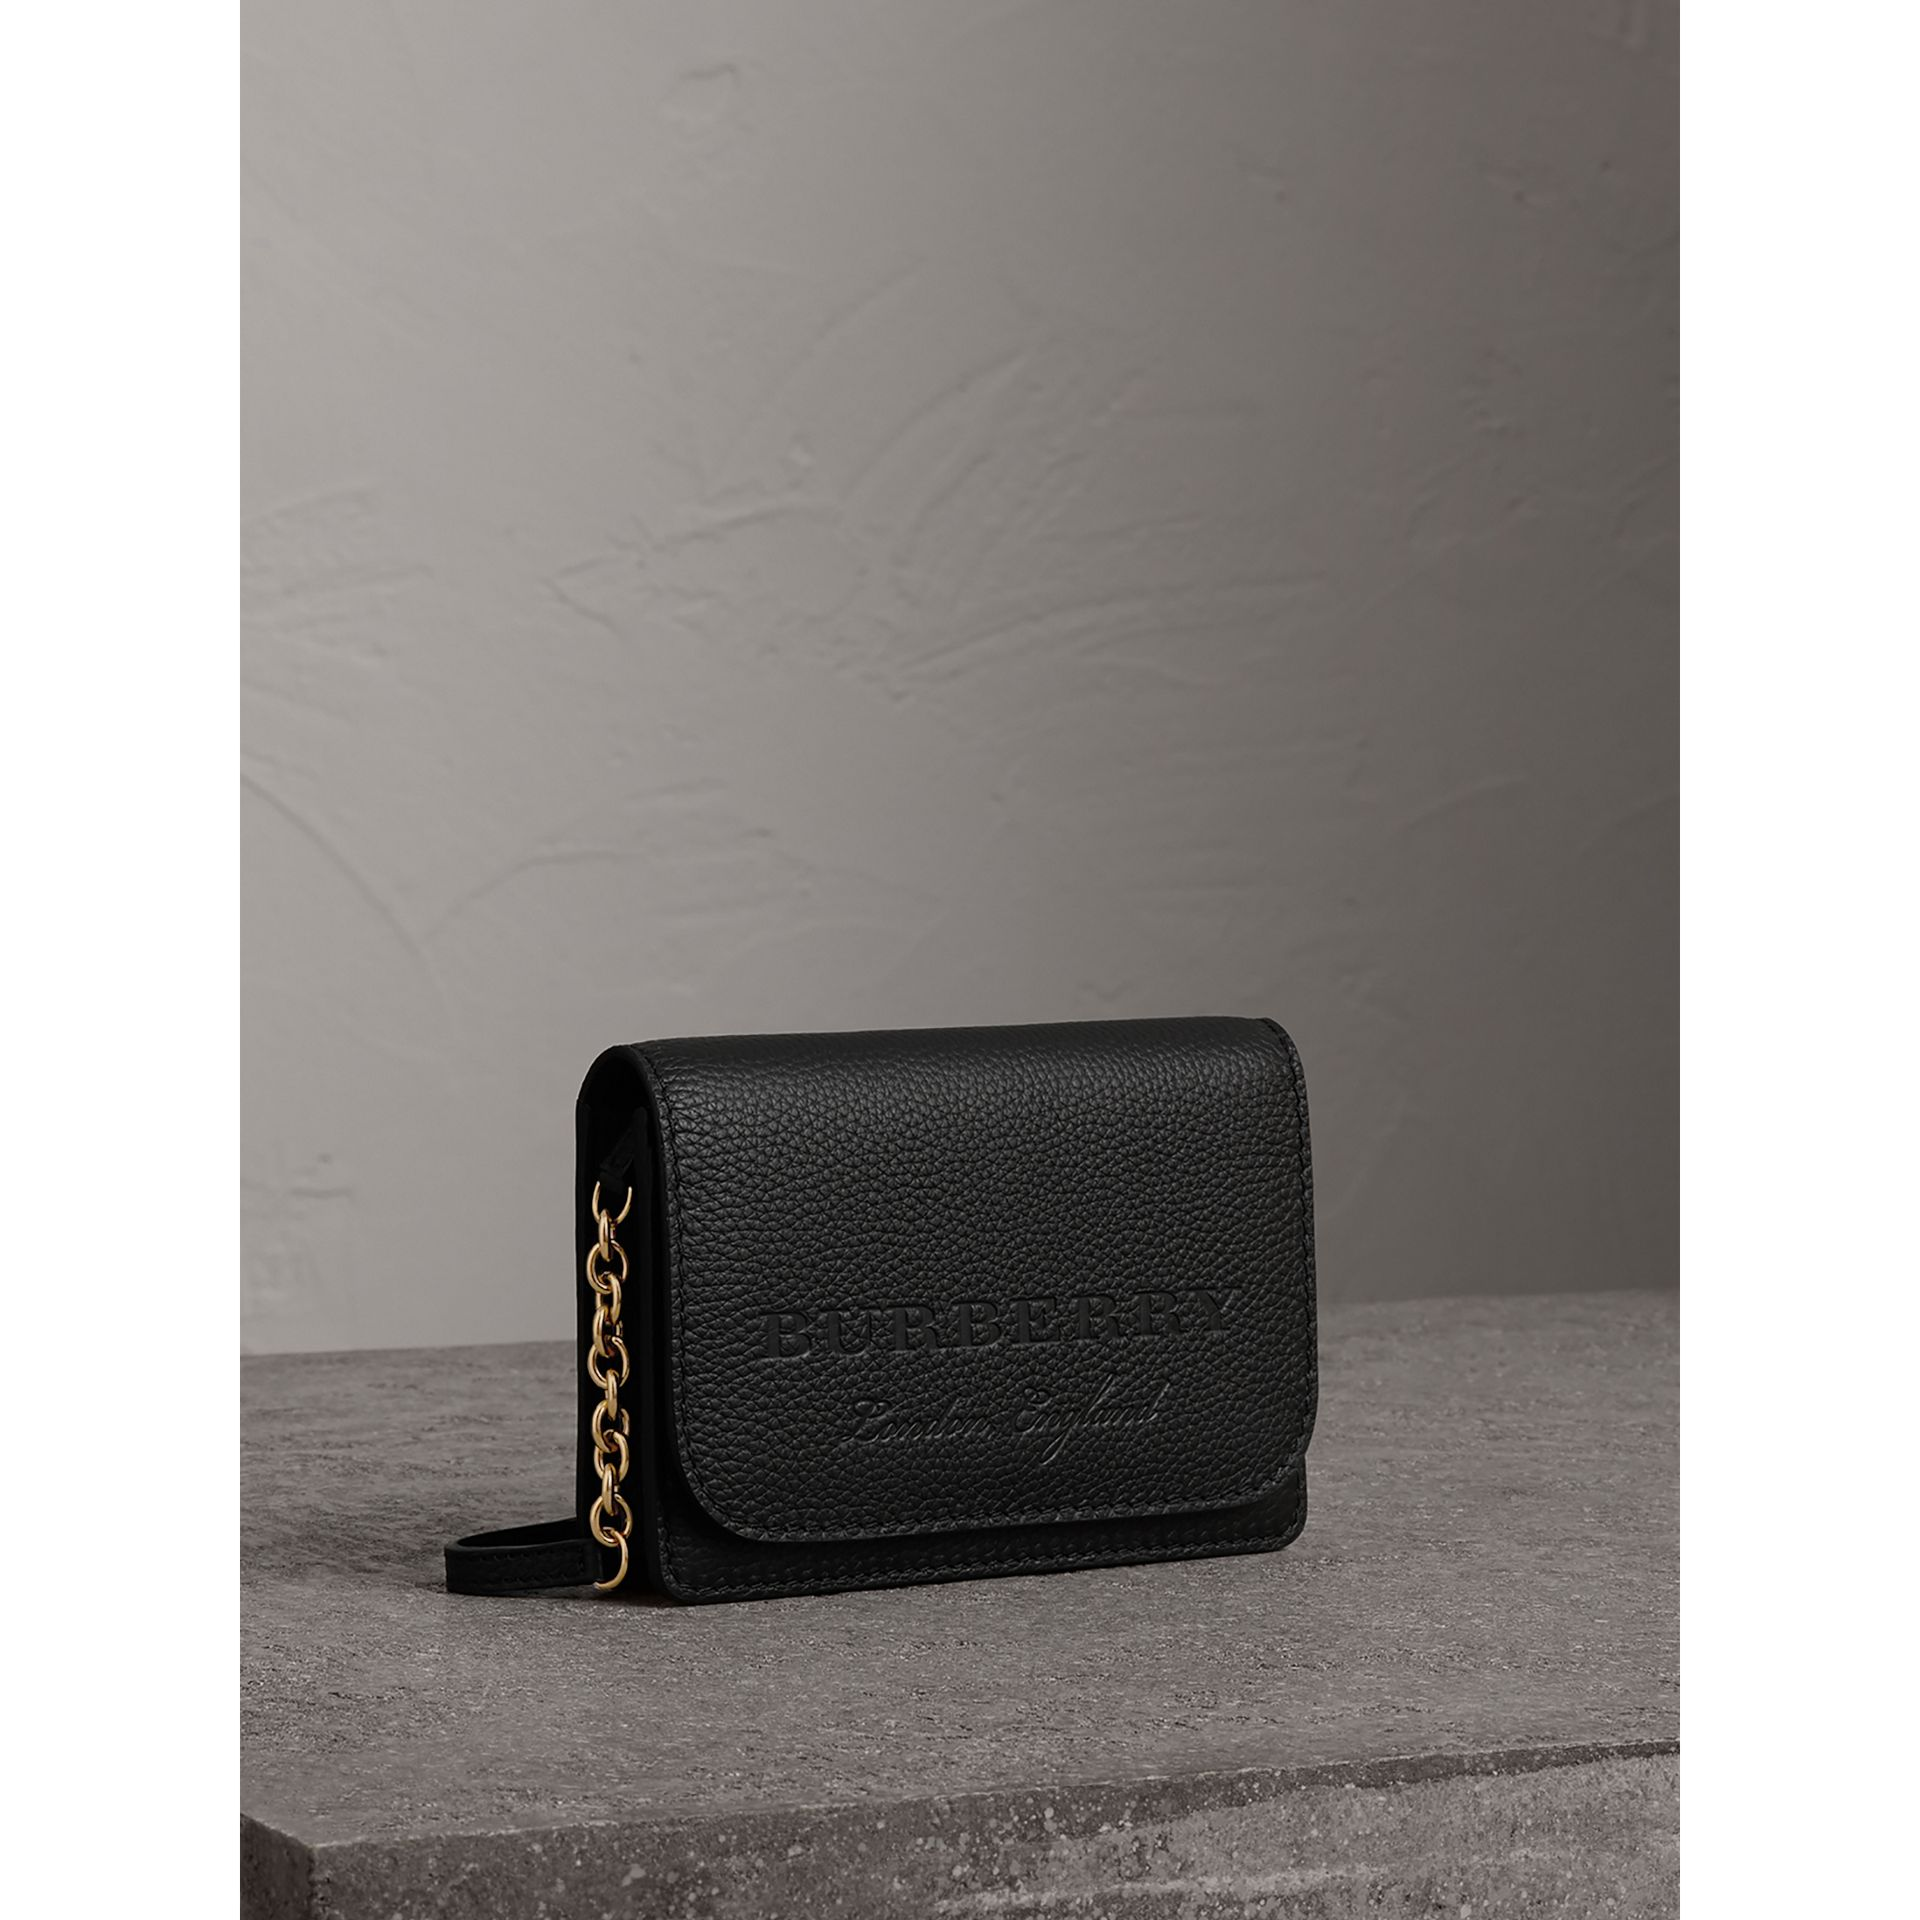 Embossed Leather Wallet with Detachable Strap in Black - Women | Burberry Hong Kong - gallery image 6